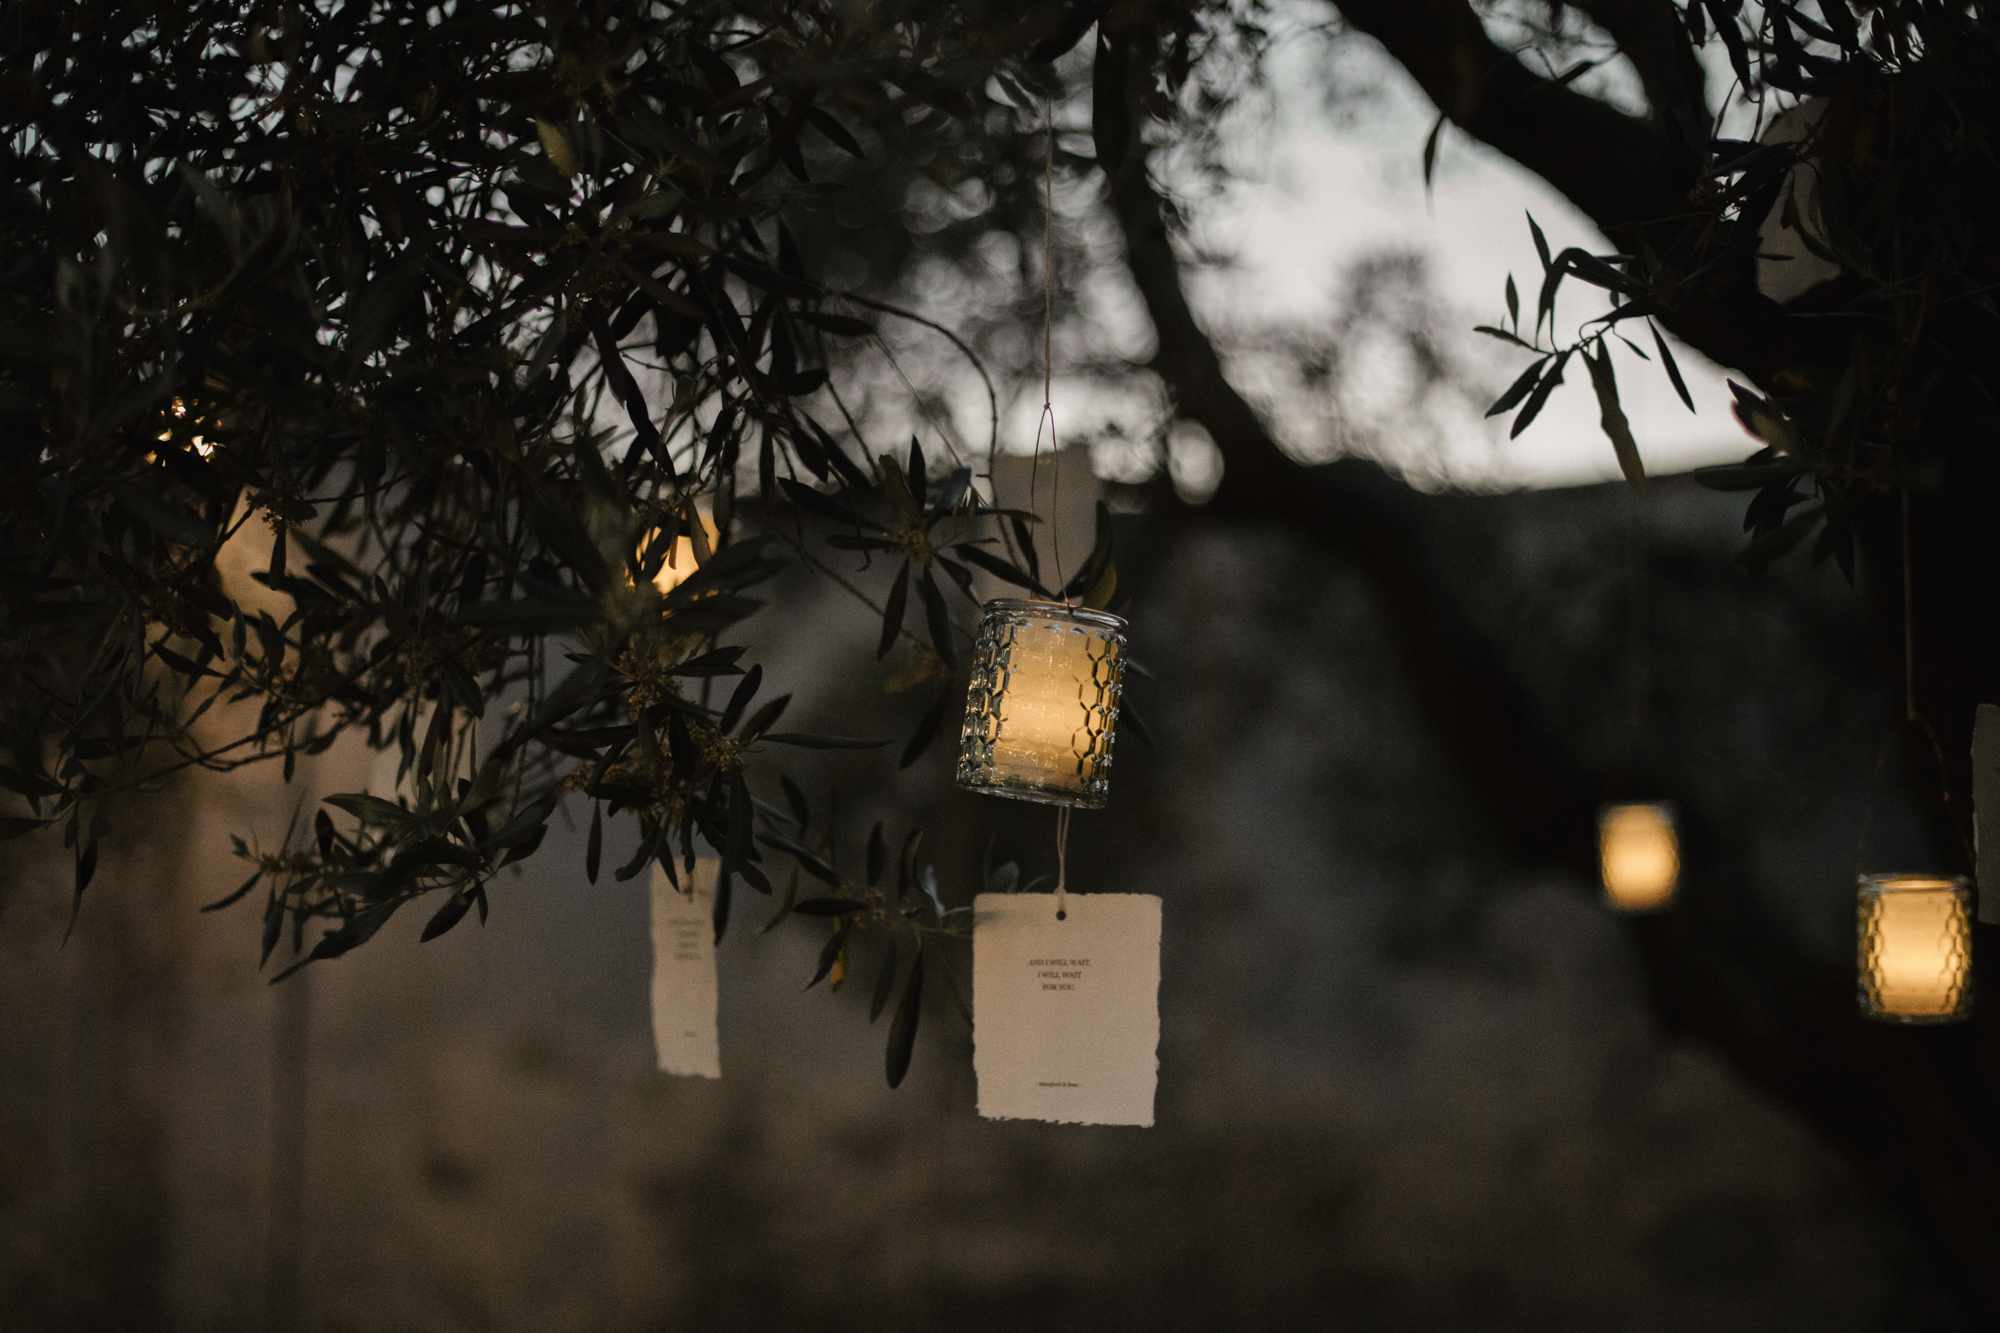 Candles and poems hanging in trees